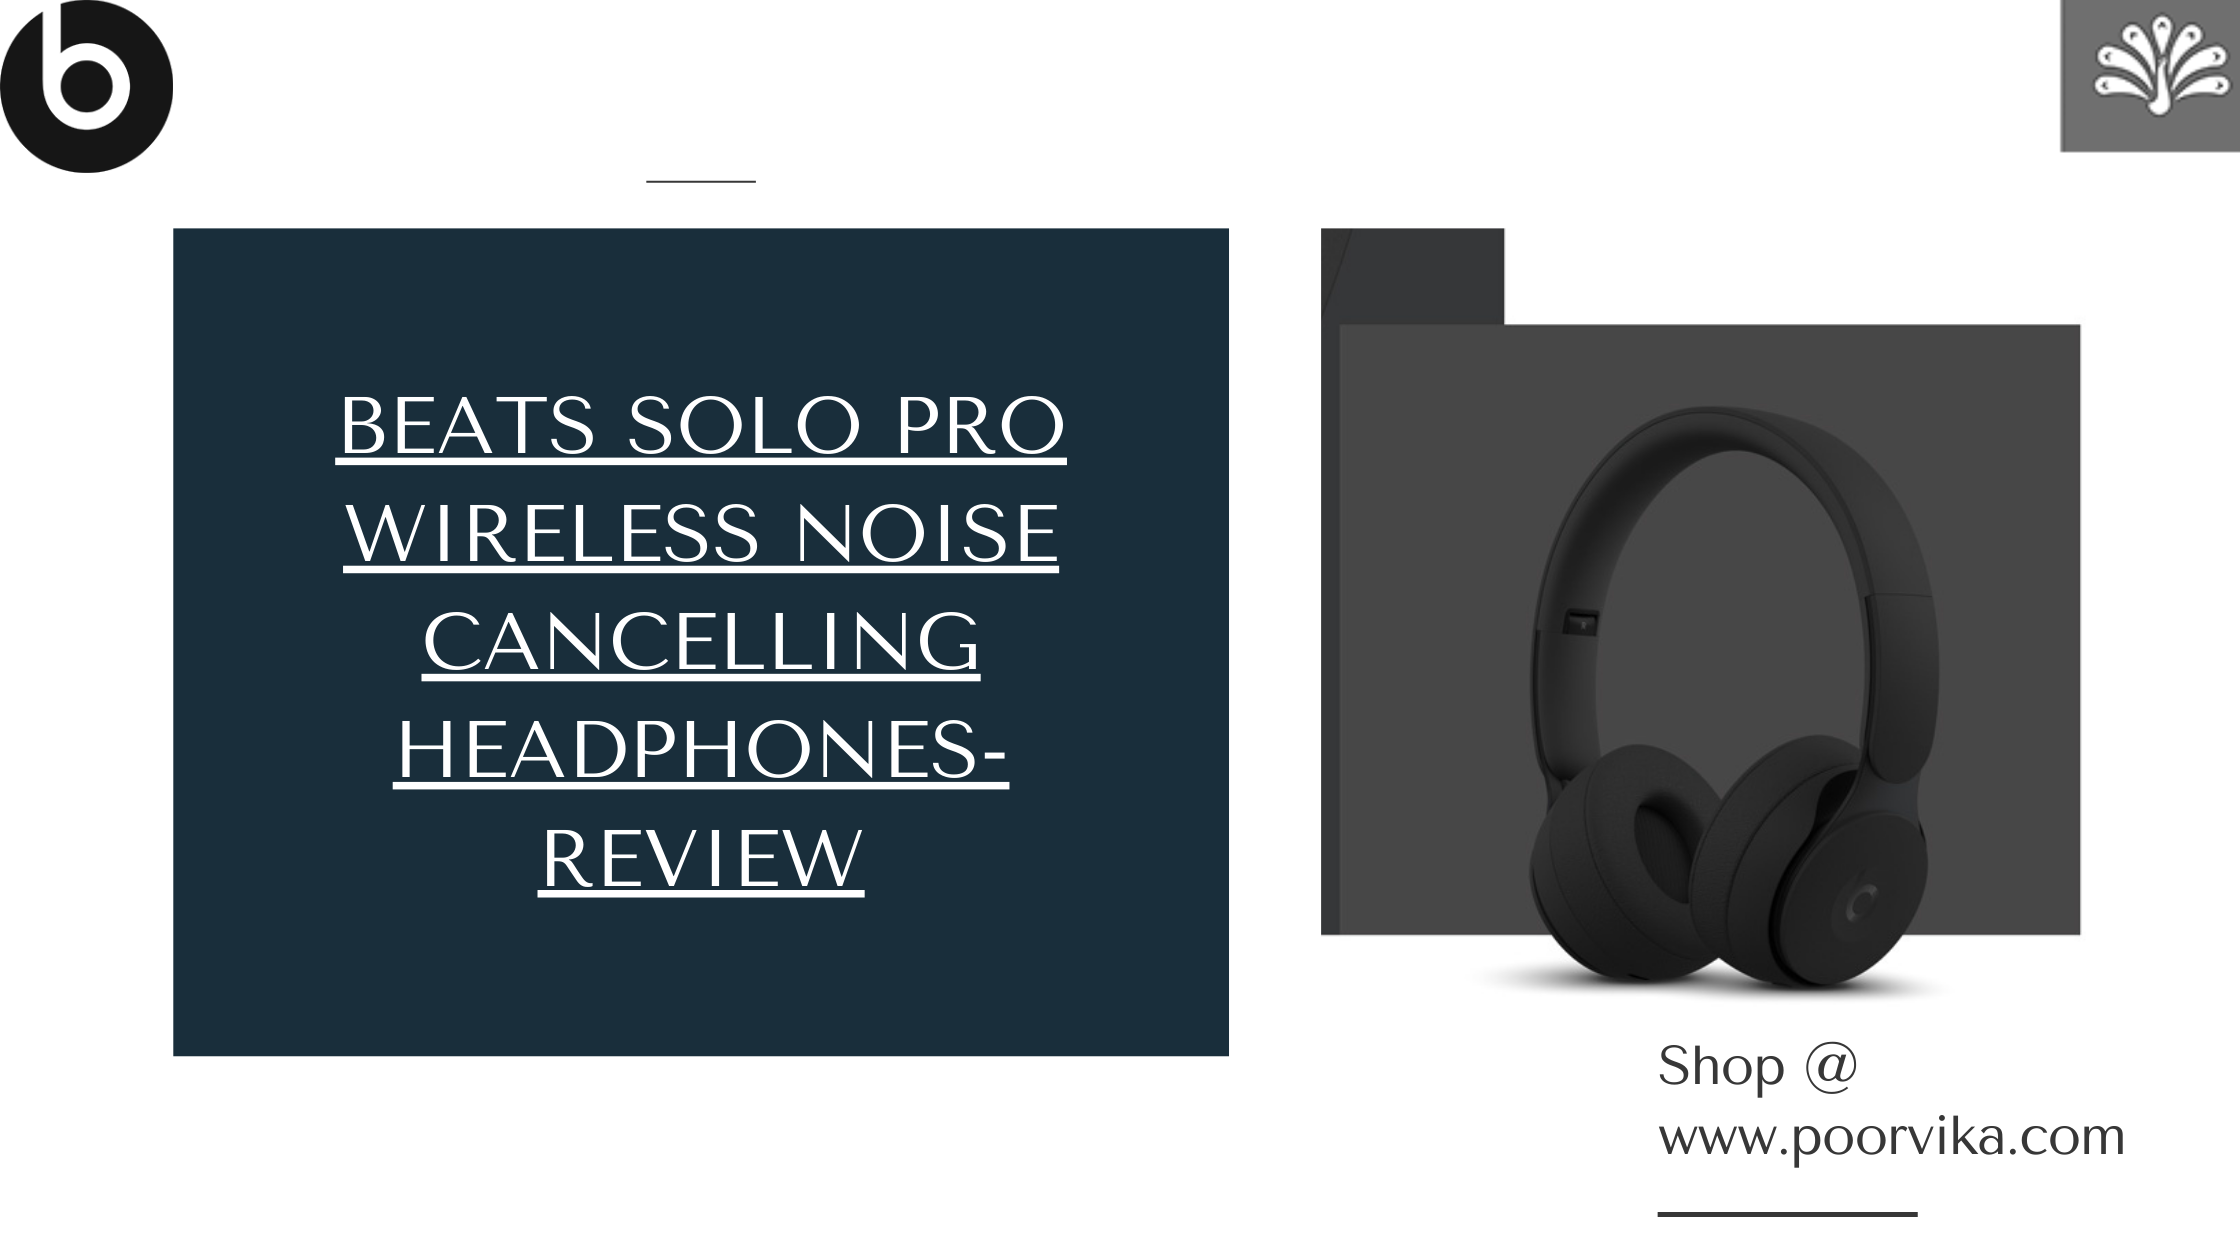 Beats Solo Pro Wireless Noise Cancelling Headphones- Review